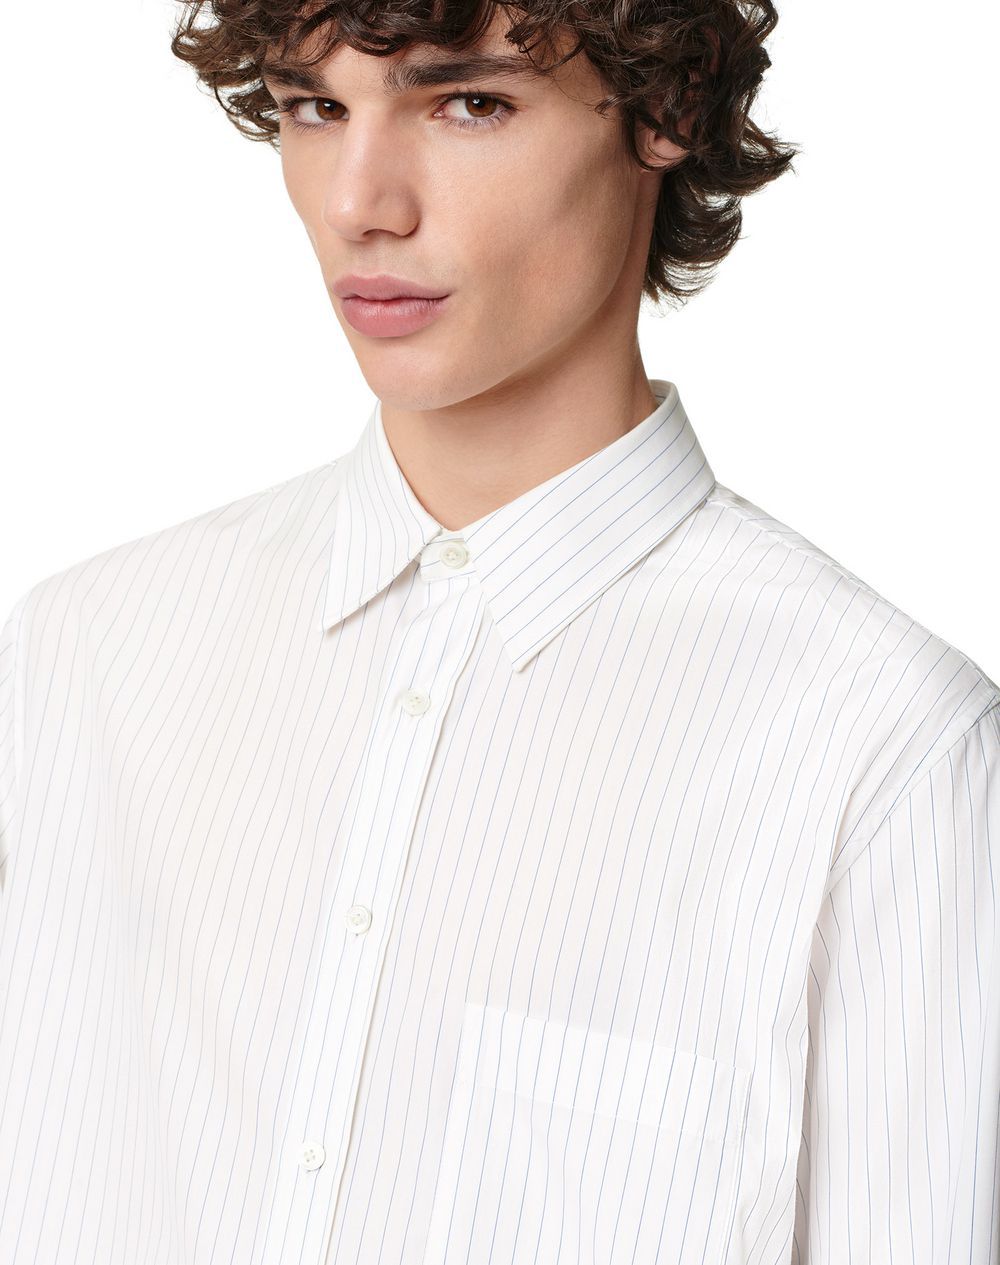 ASYMMETRICAL SHIRT - Lanvin